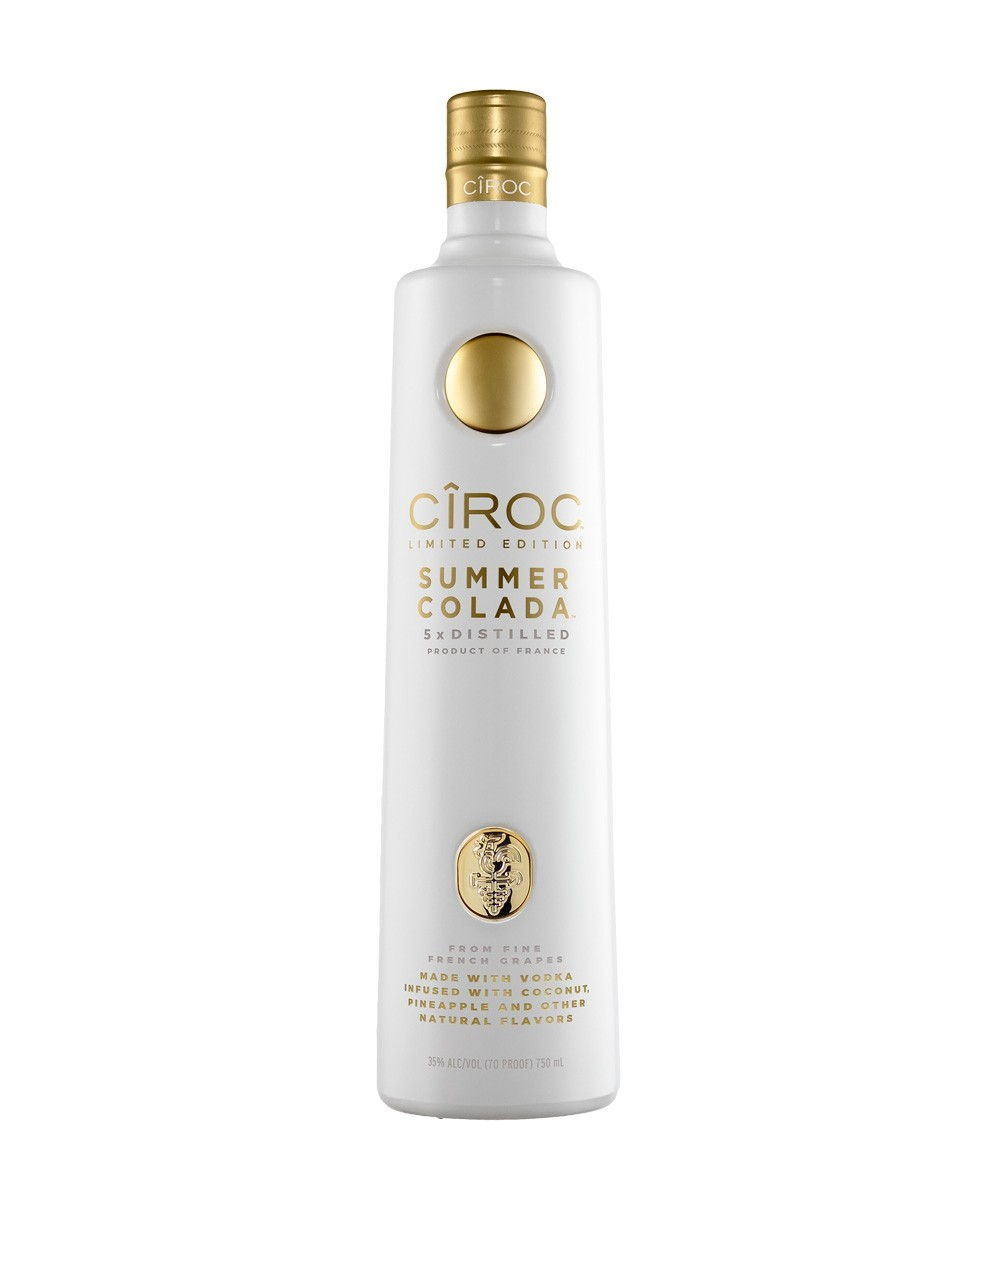 CROC Vodka Buy Online or Send as a Gift ReserveBar